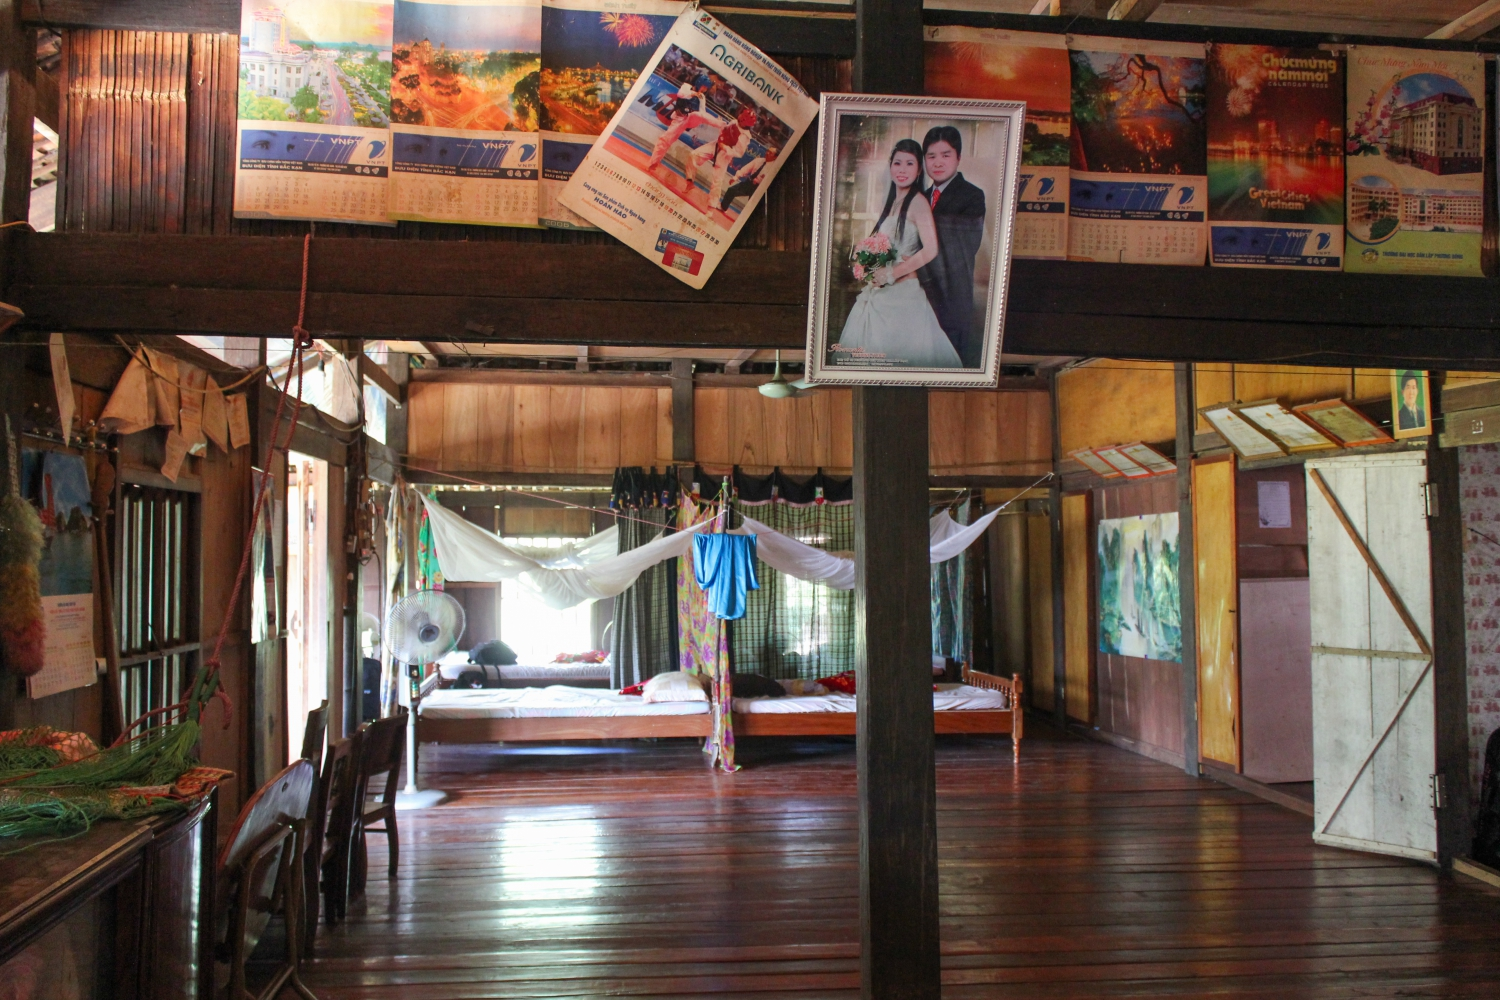 Vietnam Accommodation: Staying in a Homestay